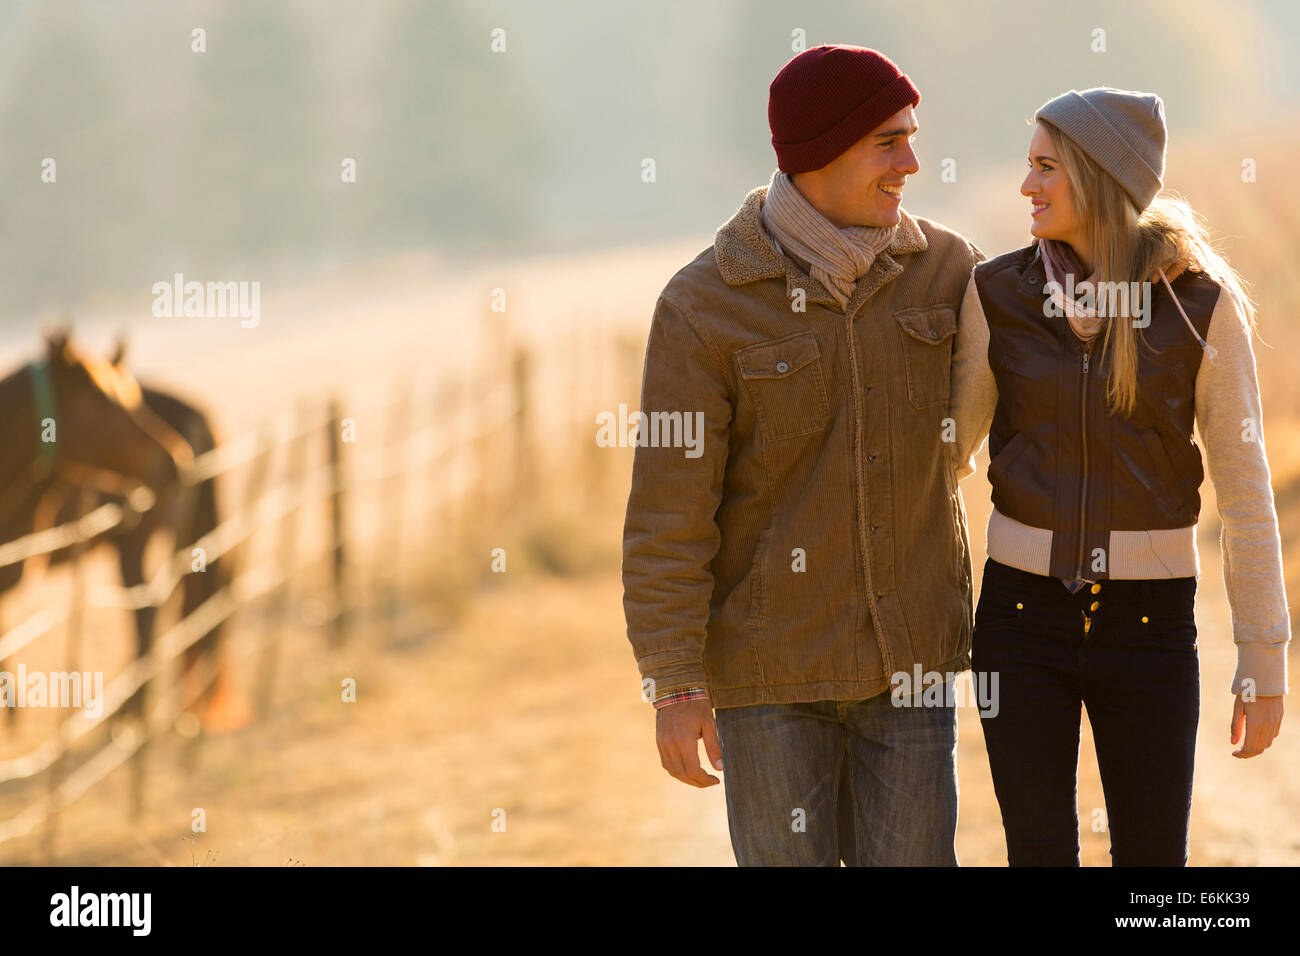 adorable young couple walking in countryside - Stock Image